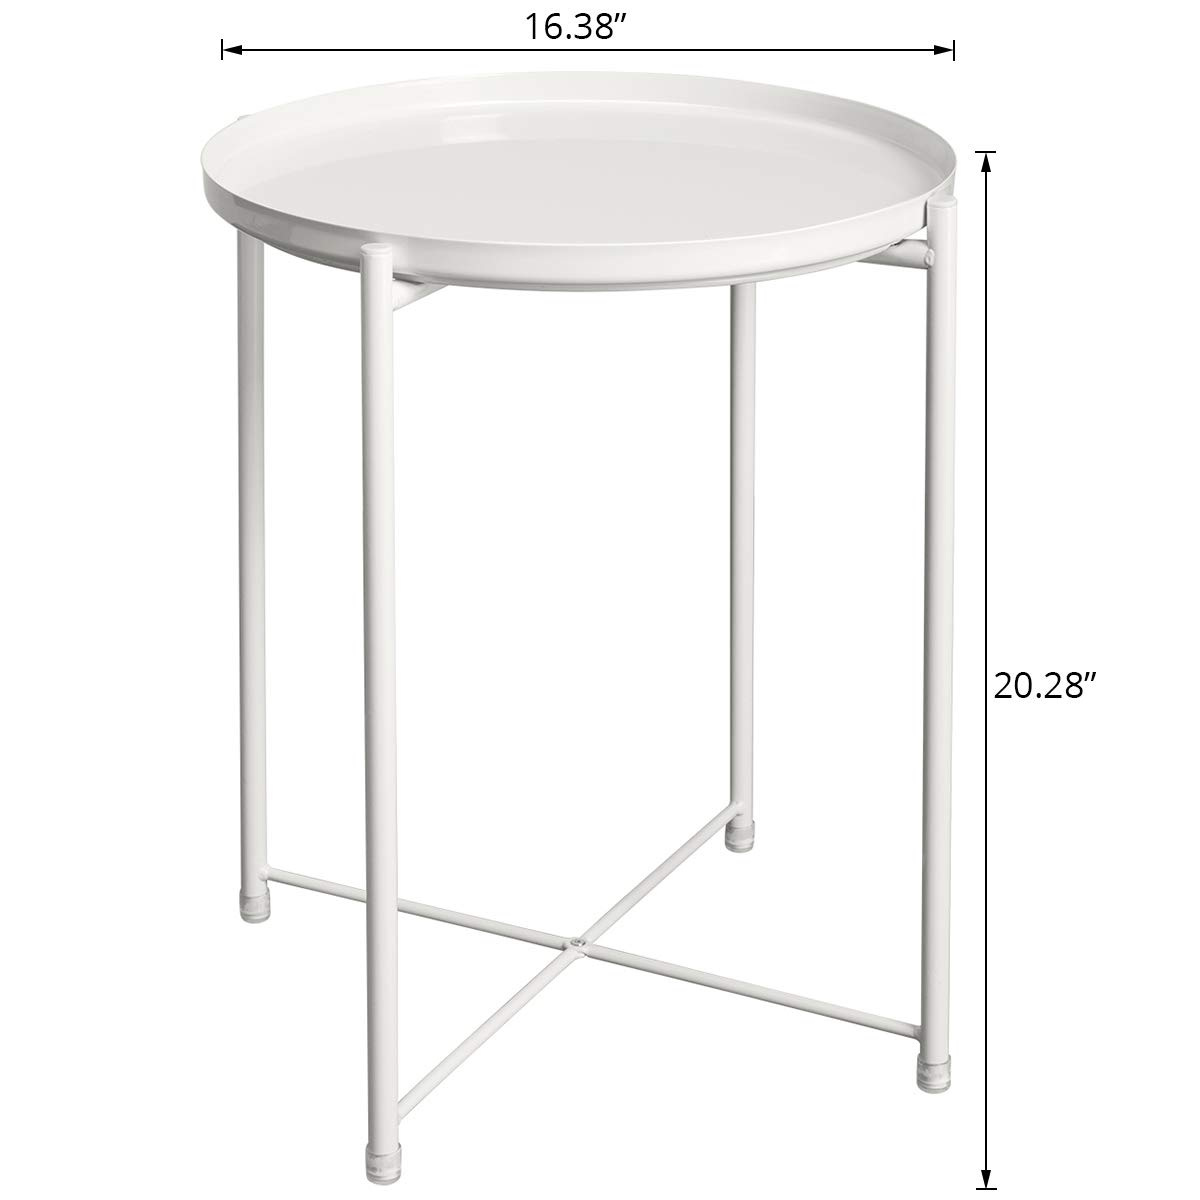 Amazoncom Hollyhome Tray Metal End Table Sofa Table Small Round